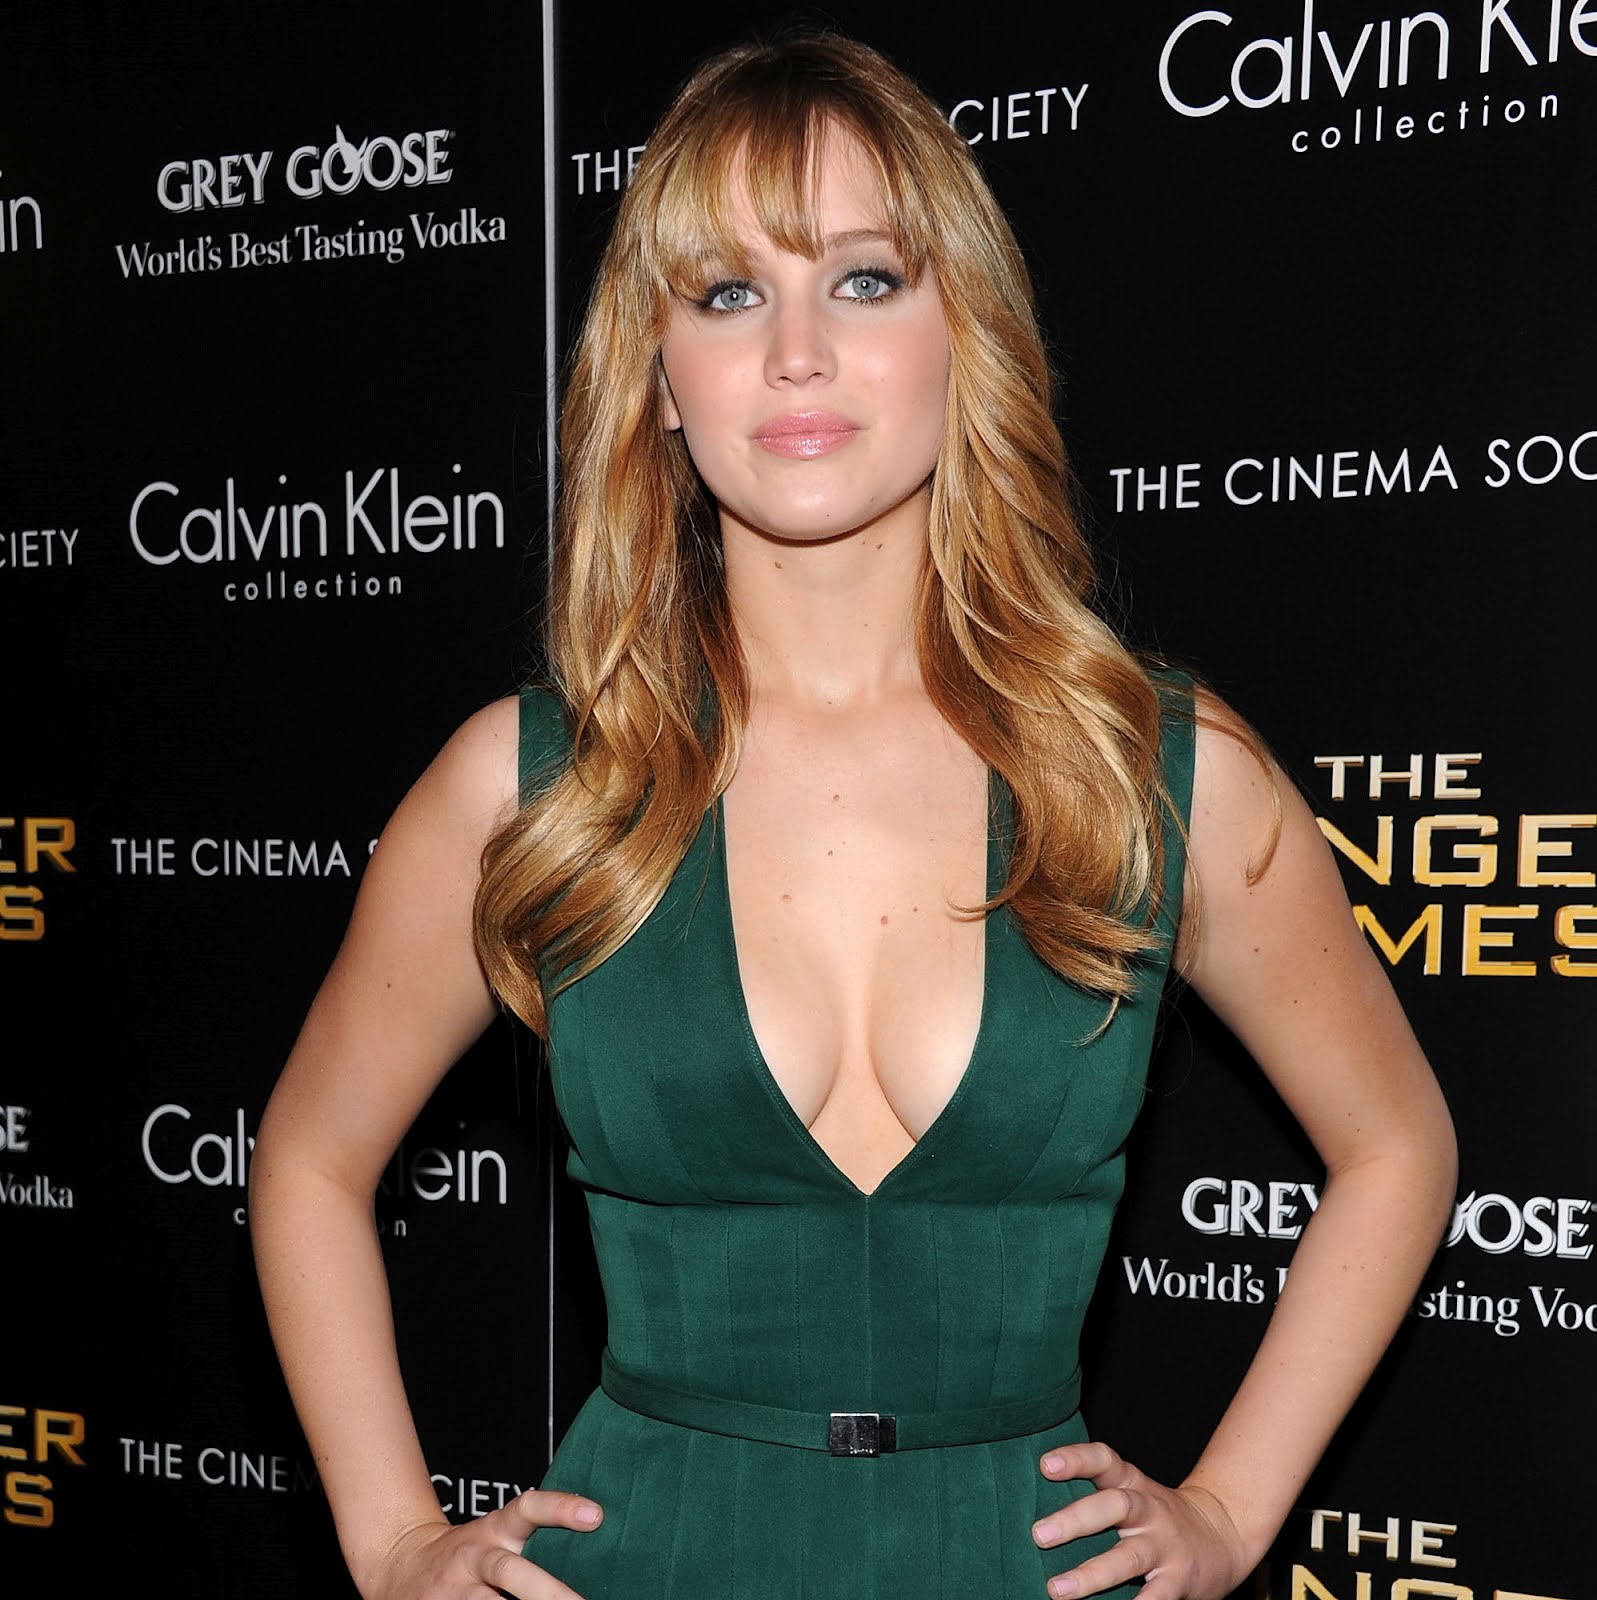 Jennifer Lawrence targeted again: More hacked photos of